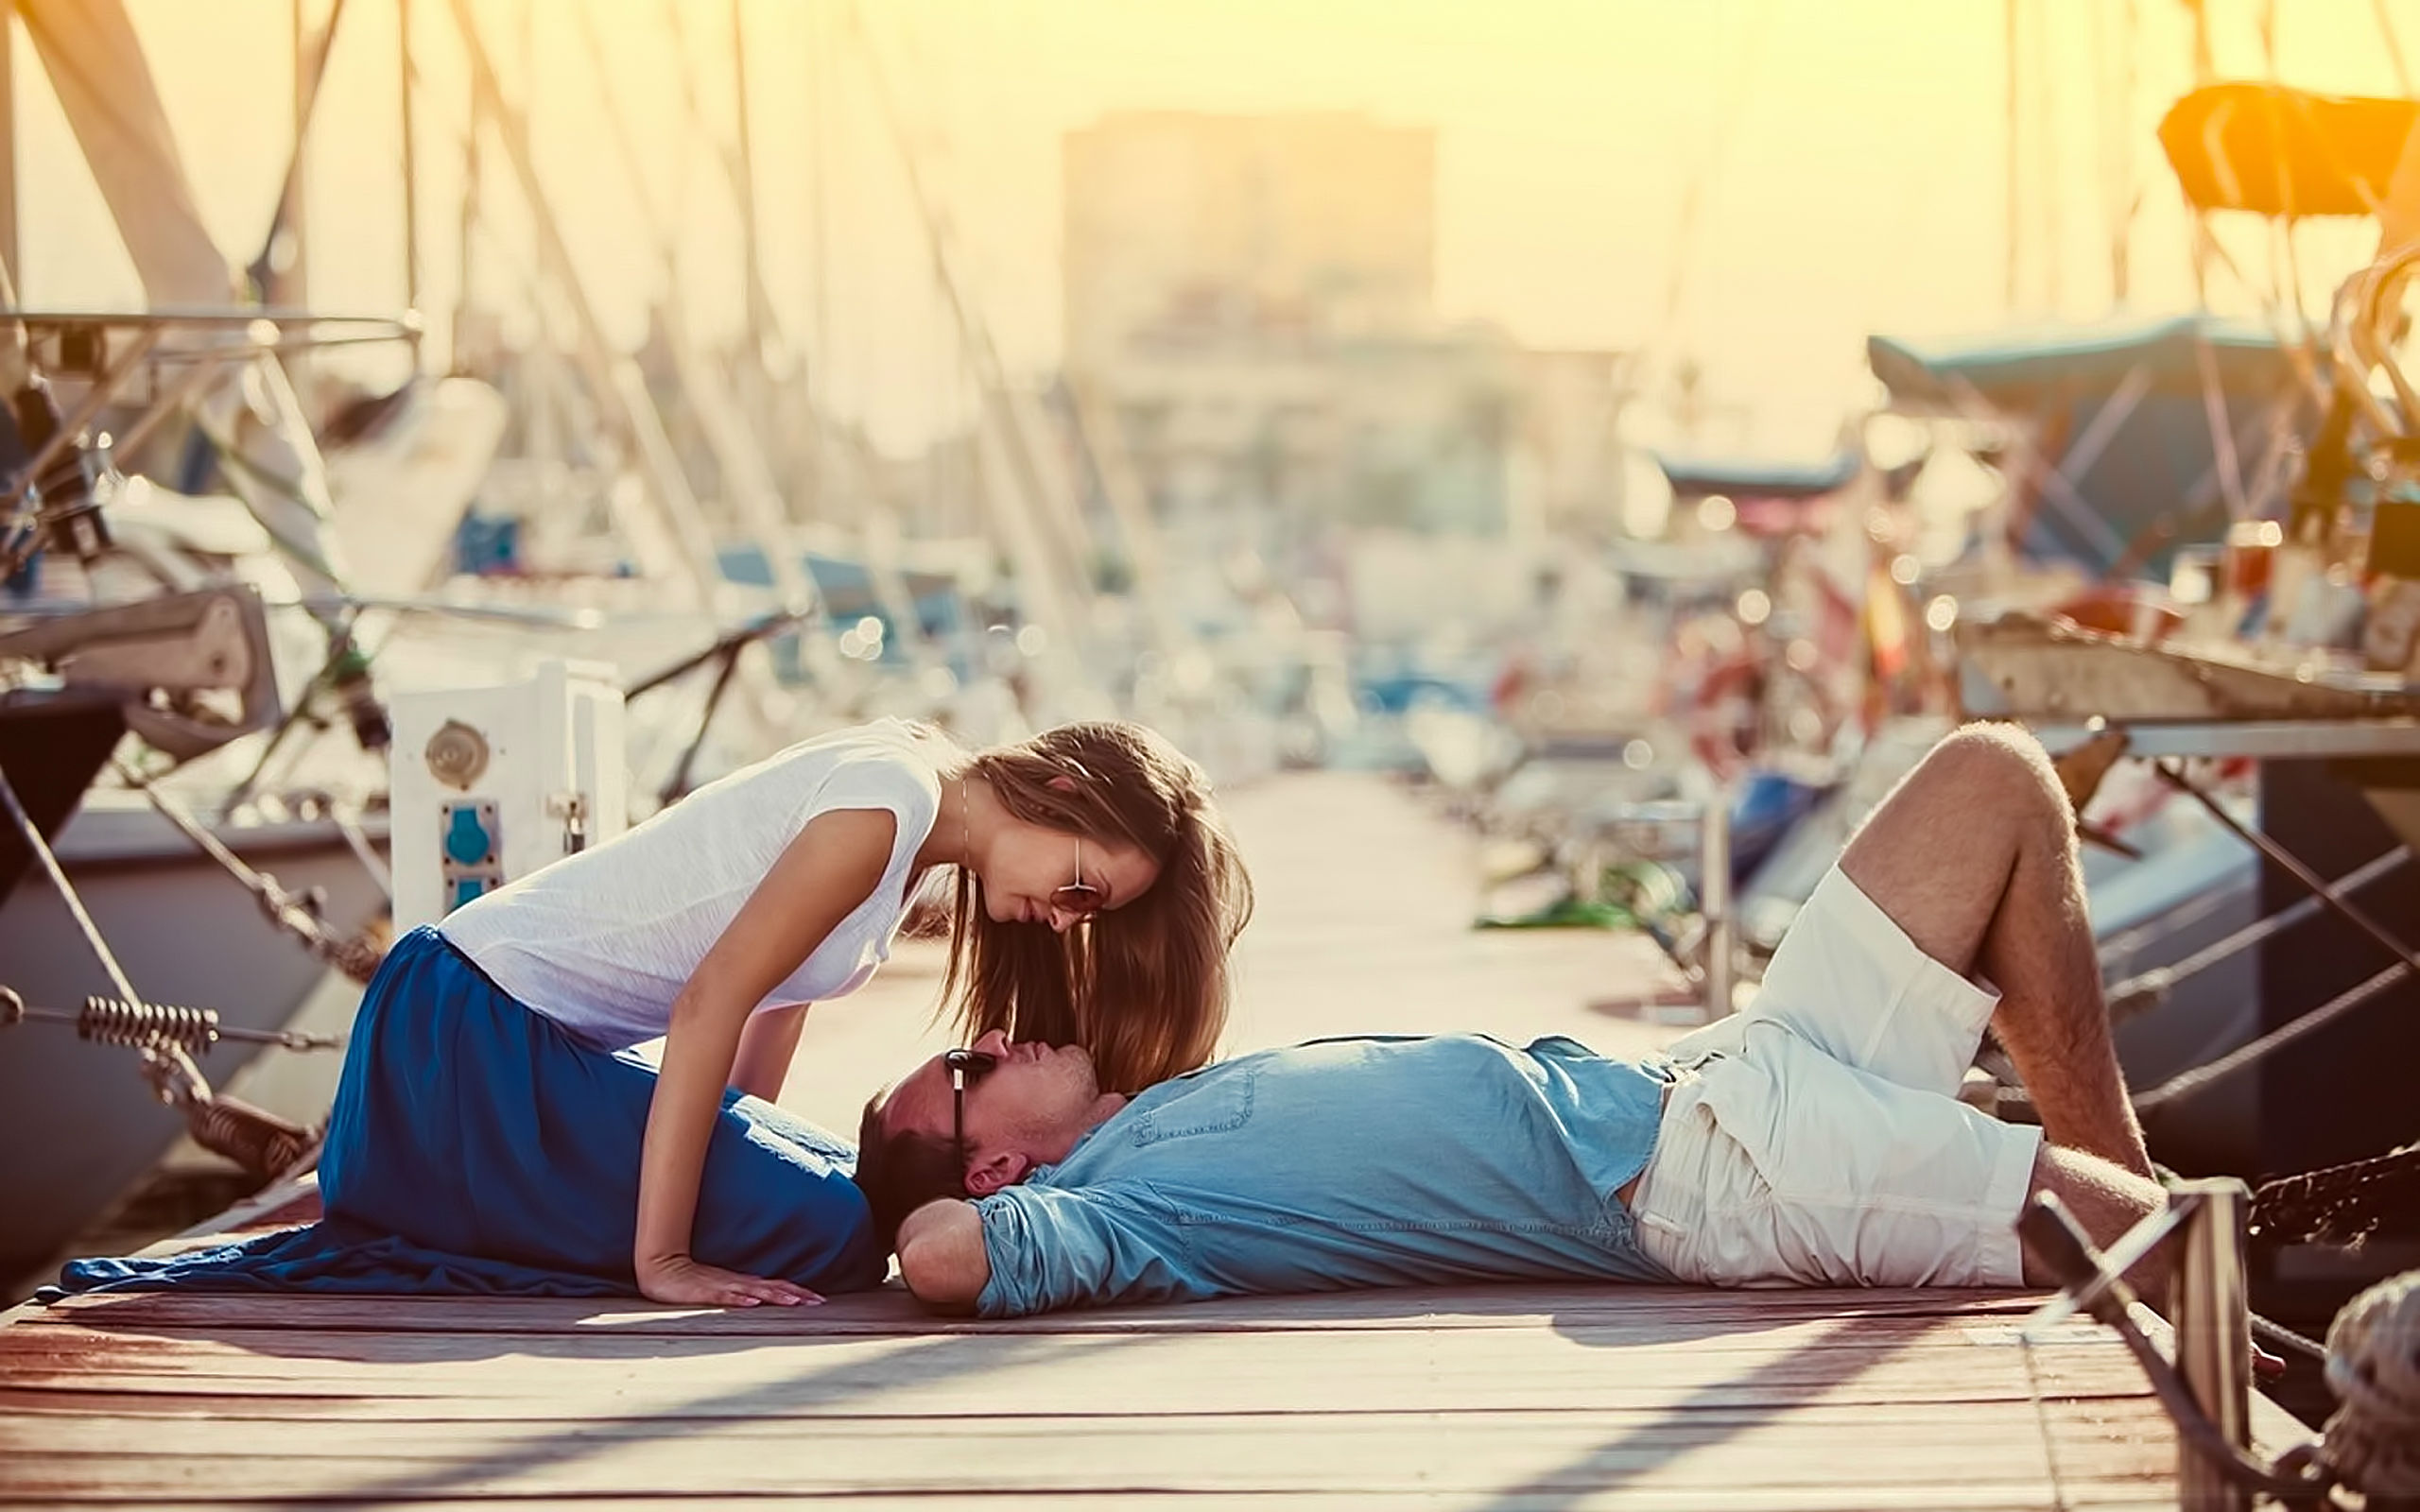 Lovely Romantic Couple Photo HD Wallpapers